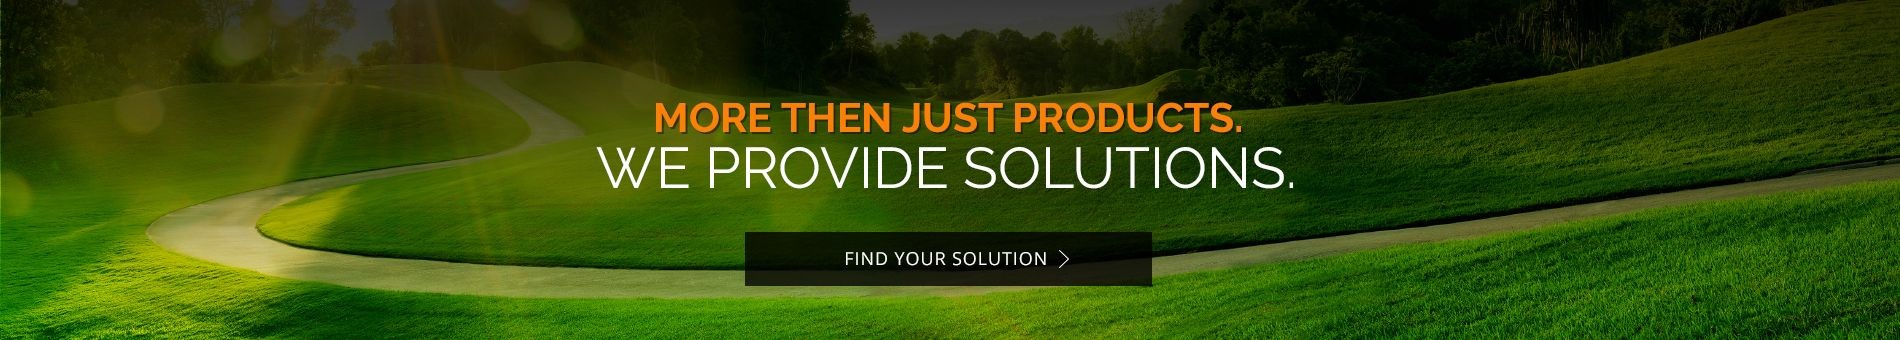 Find Your Reinders Solution